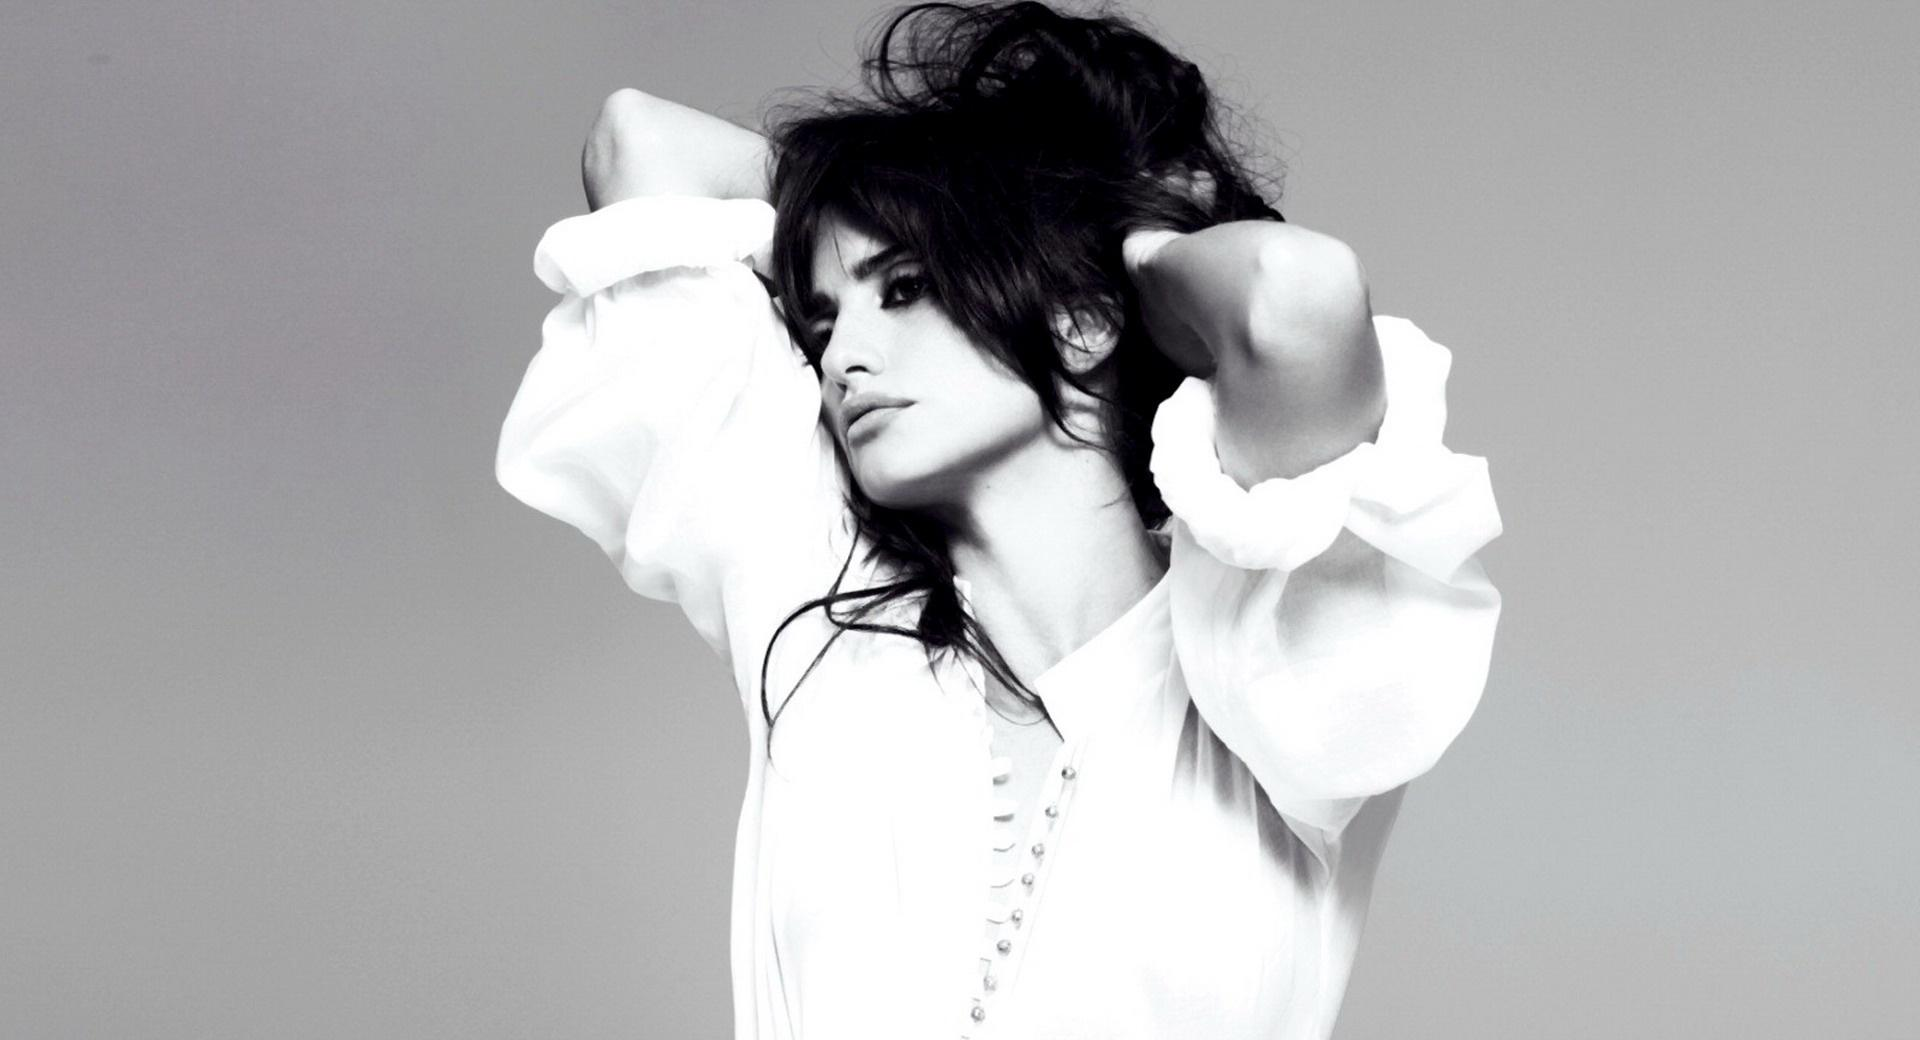 Penelope Cruz 4 at 1152 x 864 size wallpapers HD quality